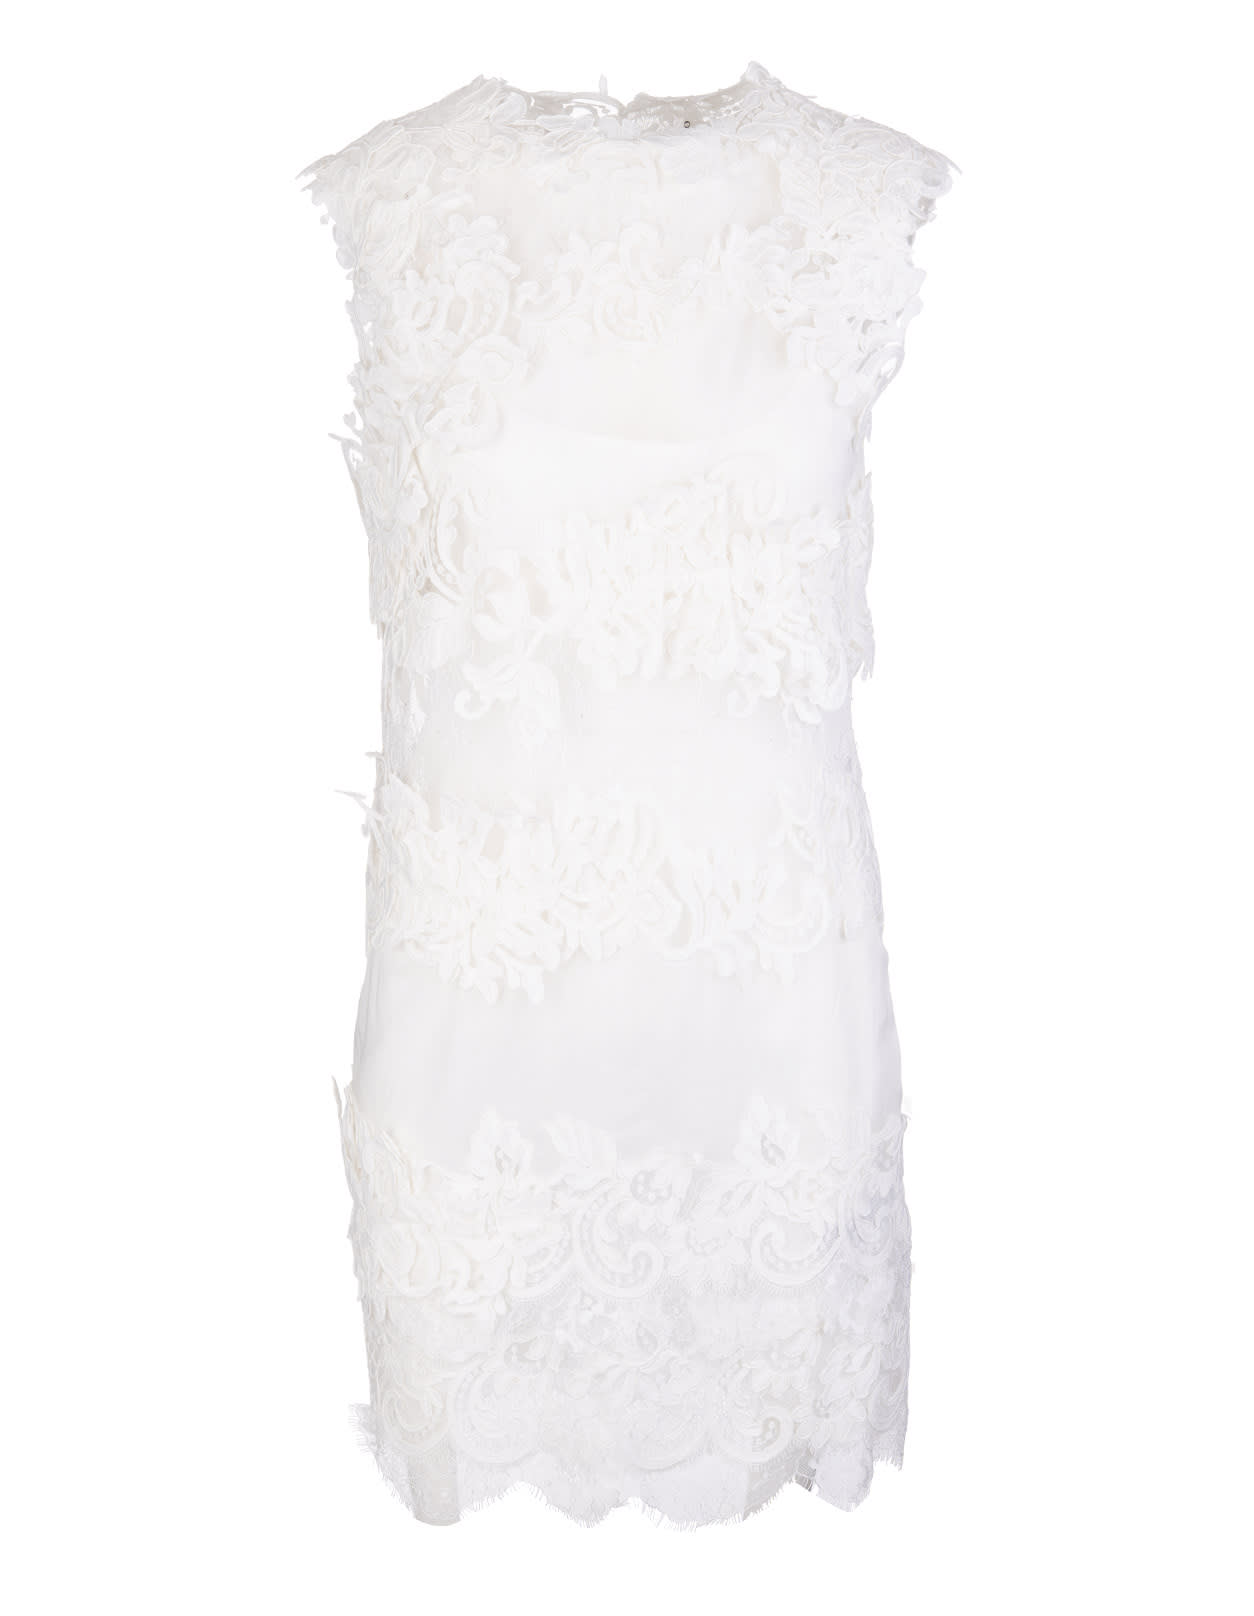 Buy Ermanno Scervino White Mini Dress With Lace Inserts online, shop Ermanno Scervino with free shipping